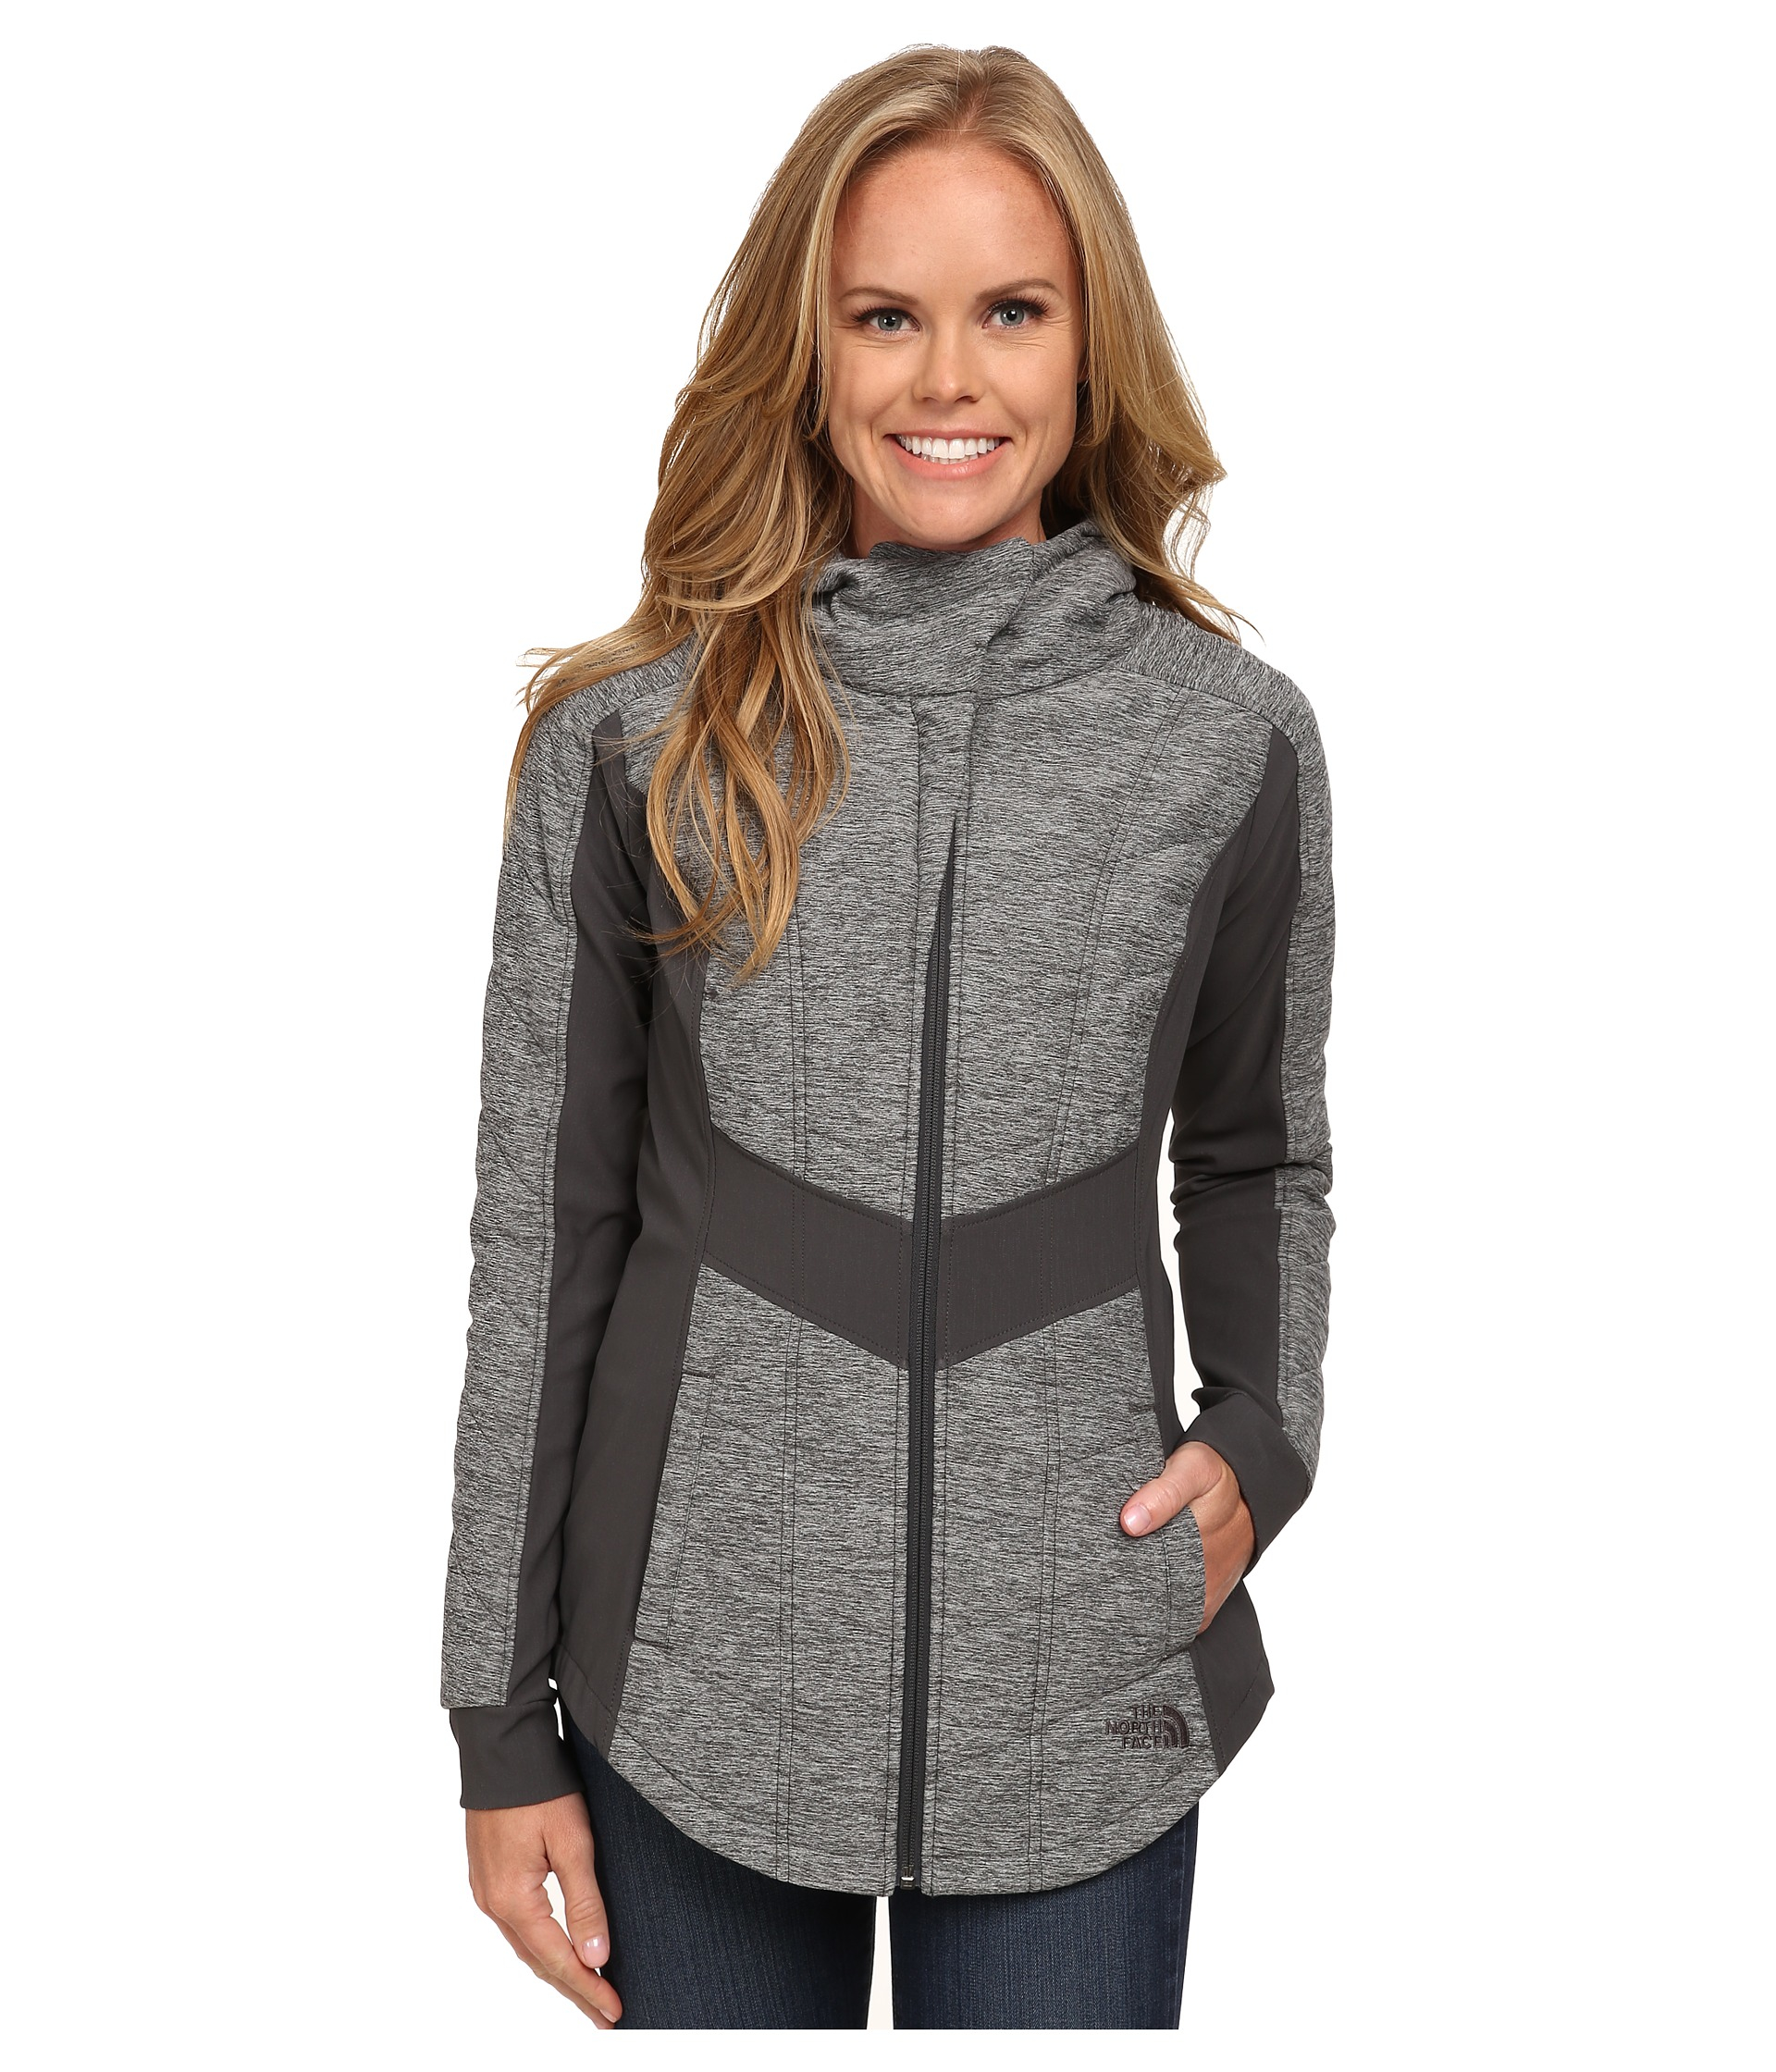 Lyst - The North Face Pseudio Jacket in Gray a18d285d0